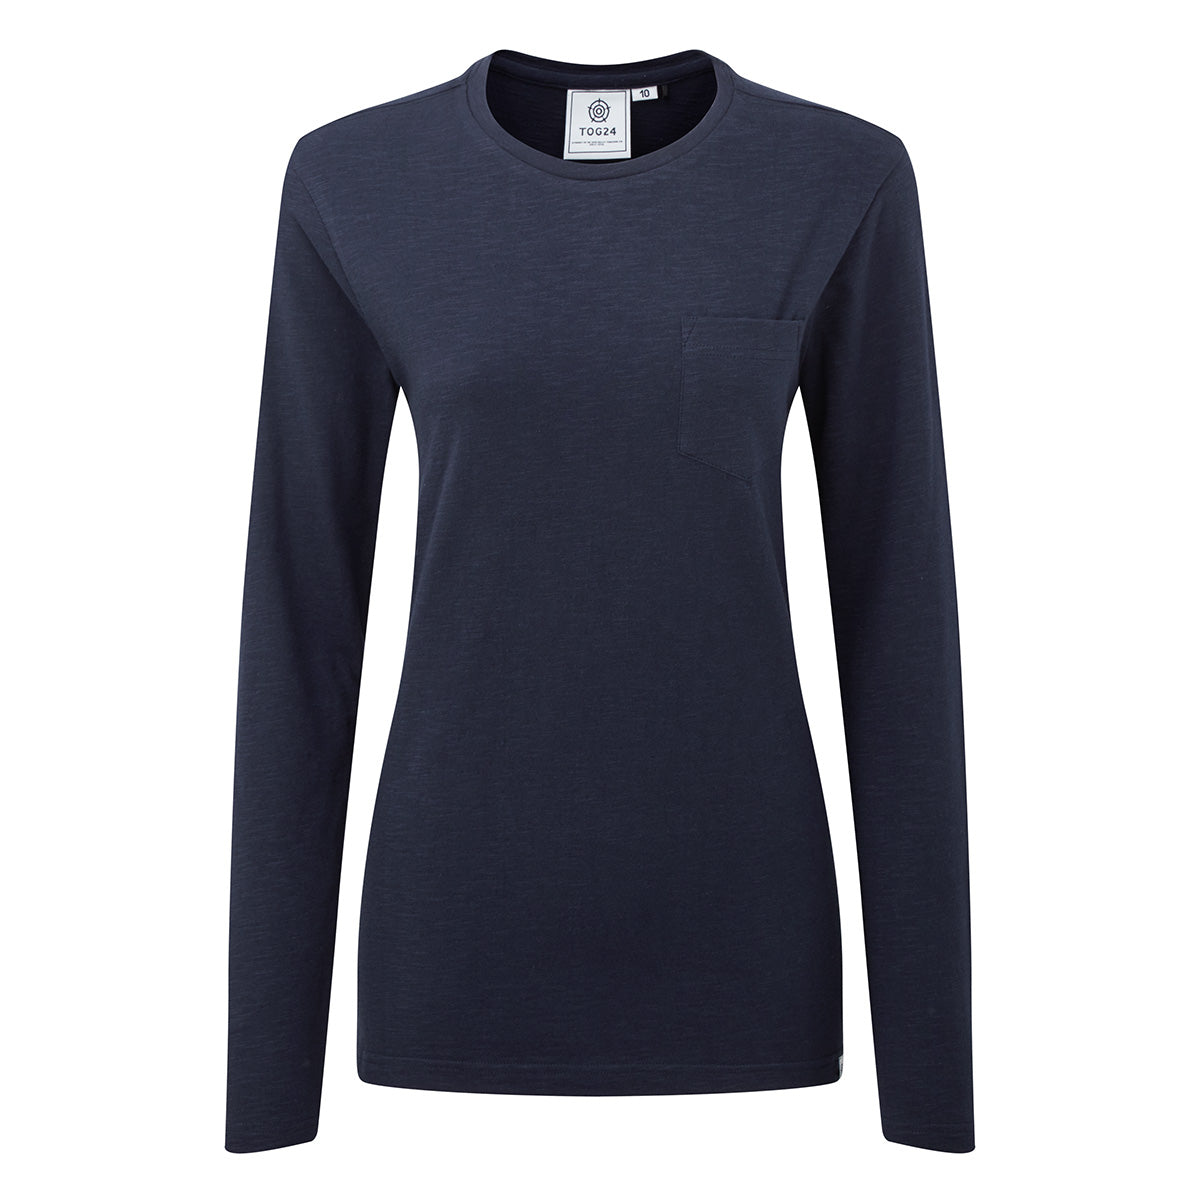 Askwith Womens Long Sleeve Pocket T-Shirt - Navy image 4